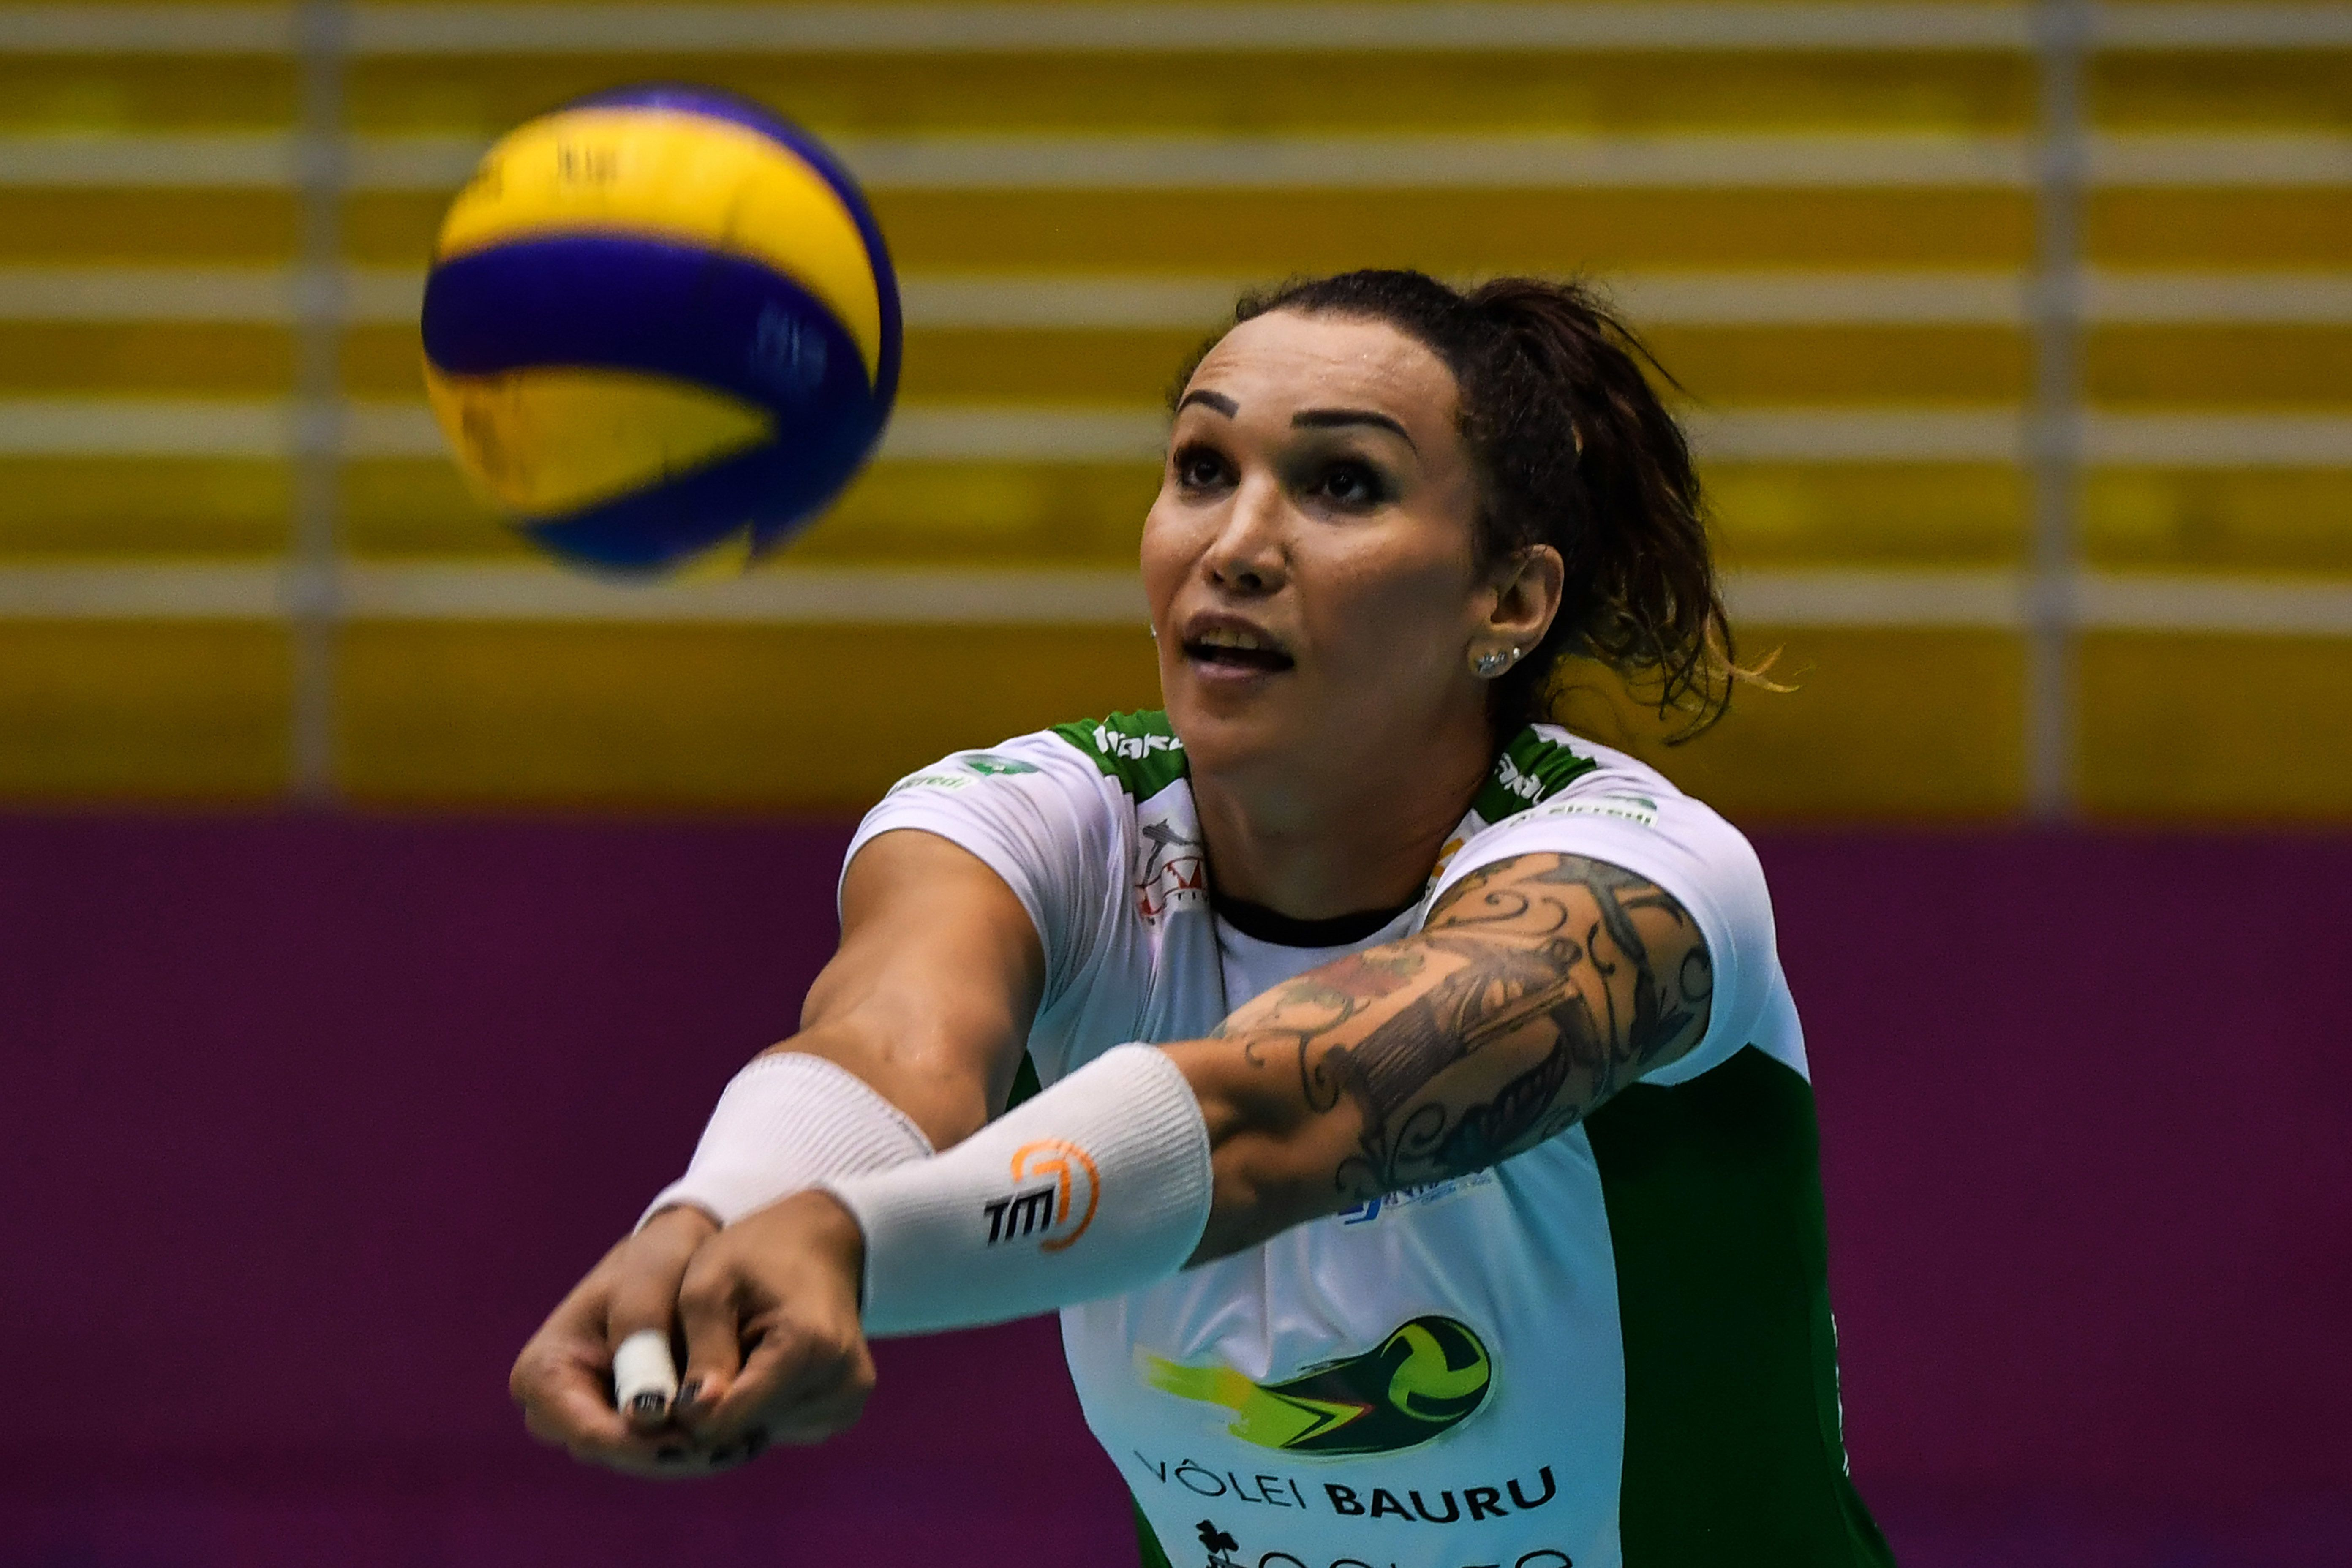 Brazilian transsexual volleyball player Tifanny Abreu takes part in a training session in Barueri, Sao Paulo, Brazil on February 16, 2018. - Abreu, the first transsexual to play in the Brazilian women's volleyball league, is candidate for federal deputy in the October 7 elections. (Photo by NELSON ALMEIDA / AFP)        (Photo credit should read NELSON ALMEIDA/AFP/Getty Images)